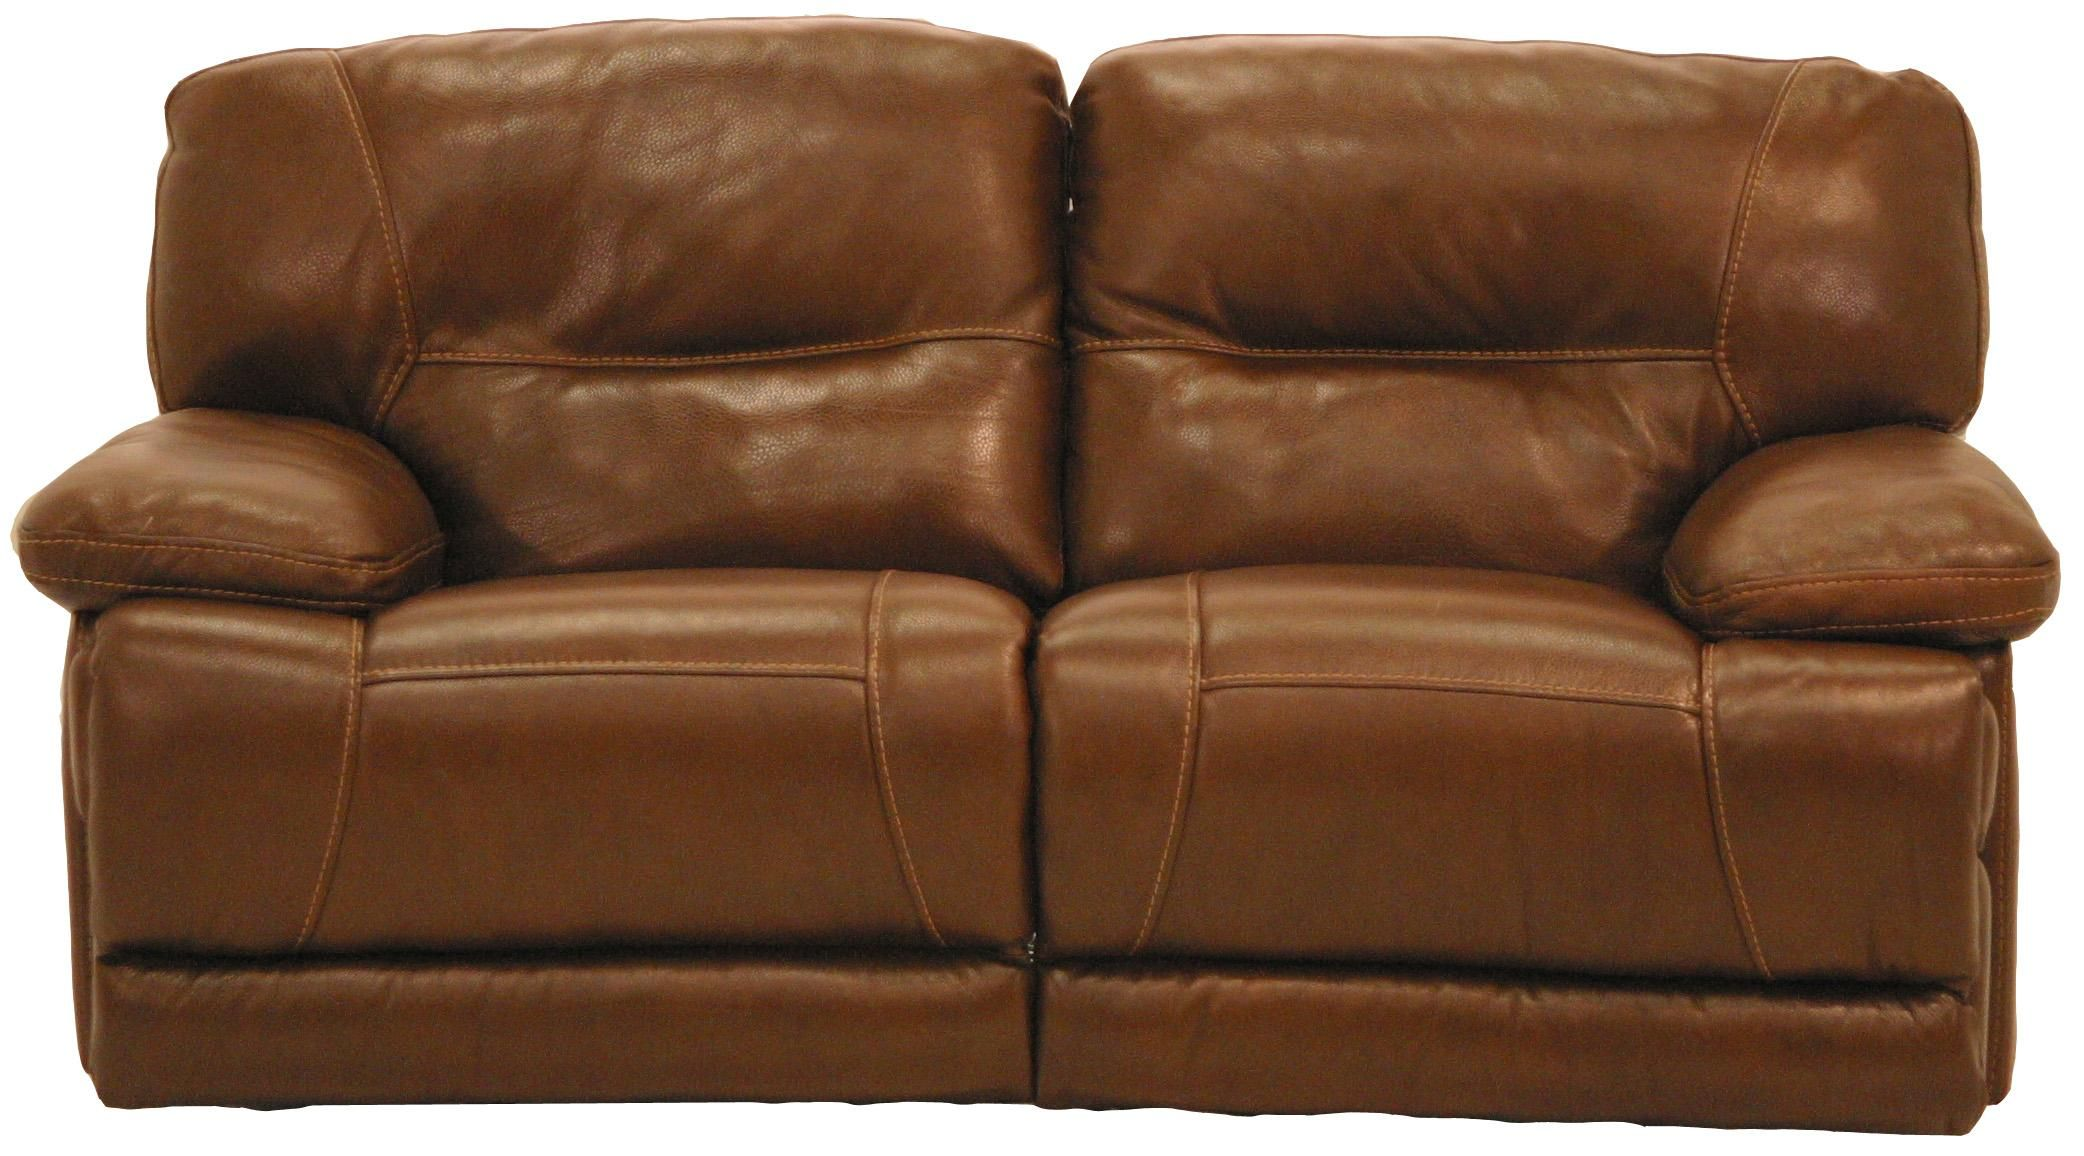 U8557m Leather Casual Reclining Leather Loveseat By Cheers